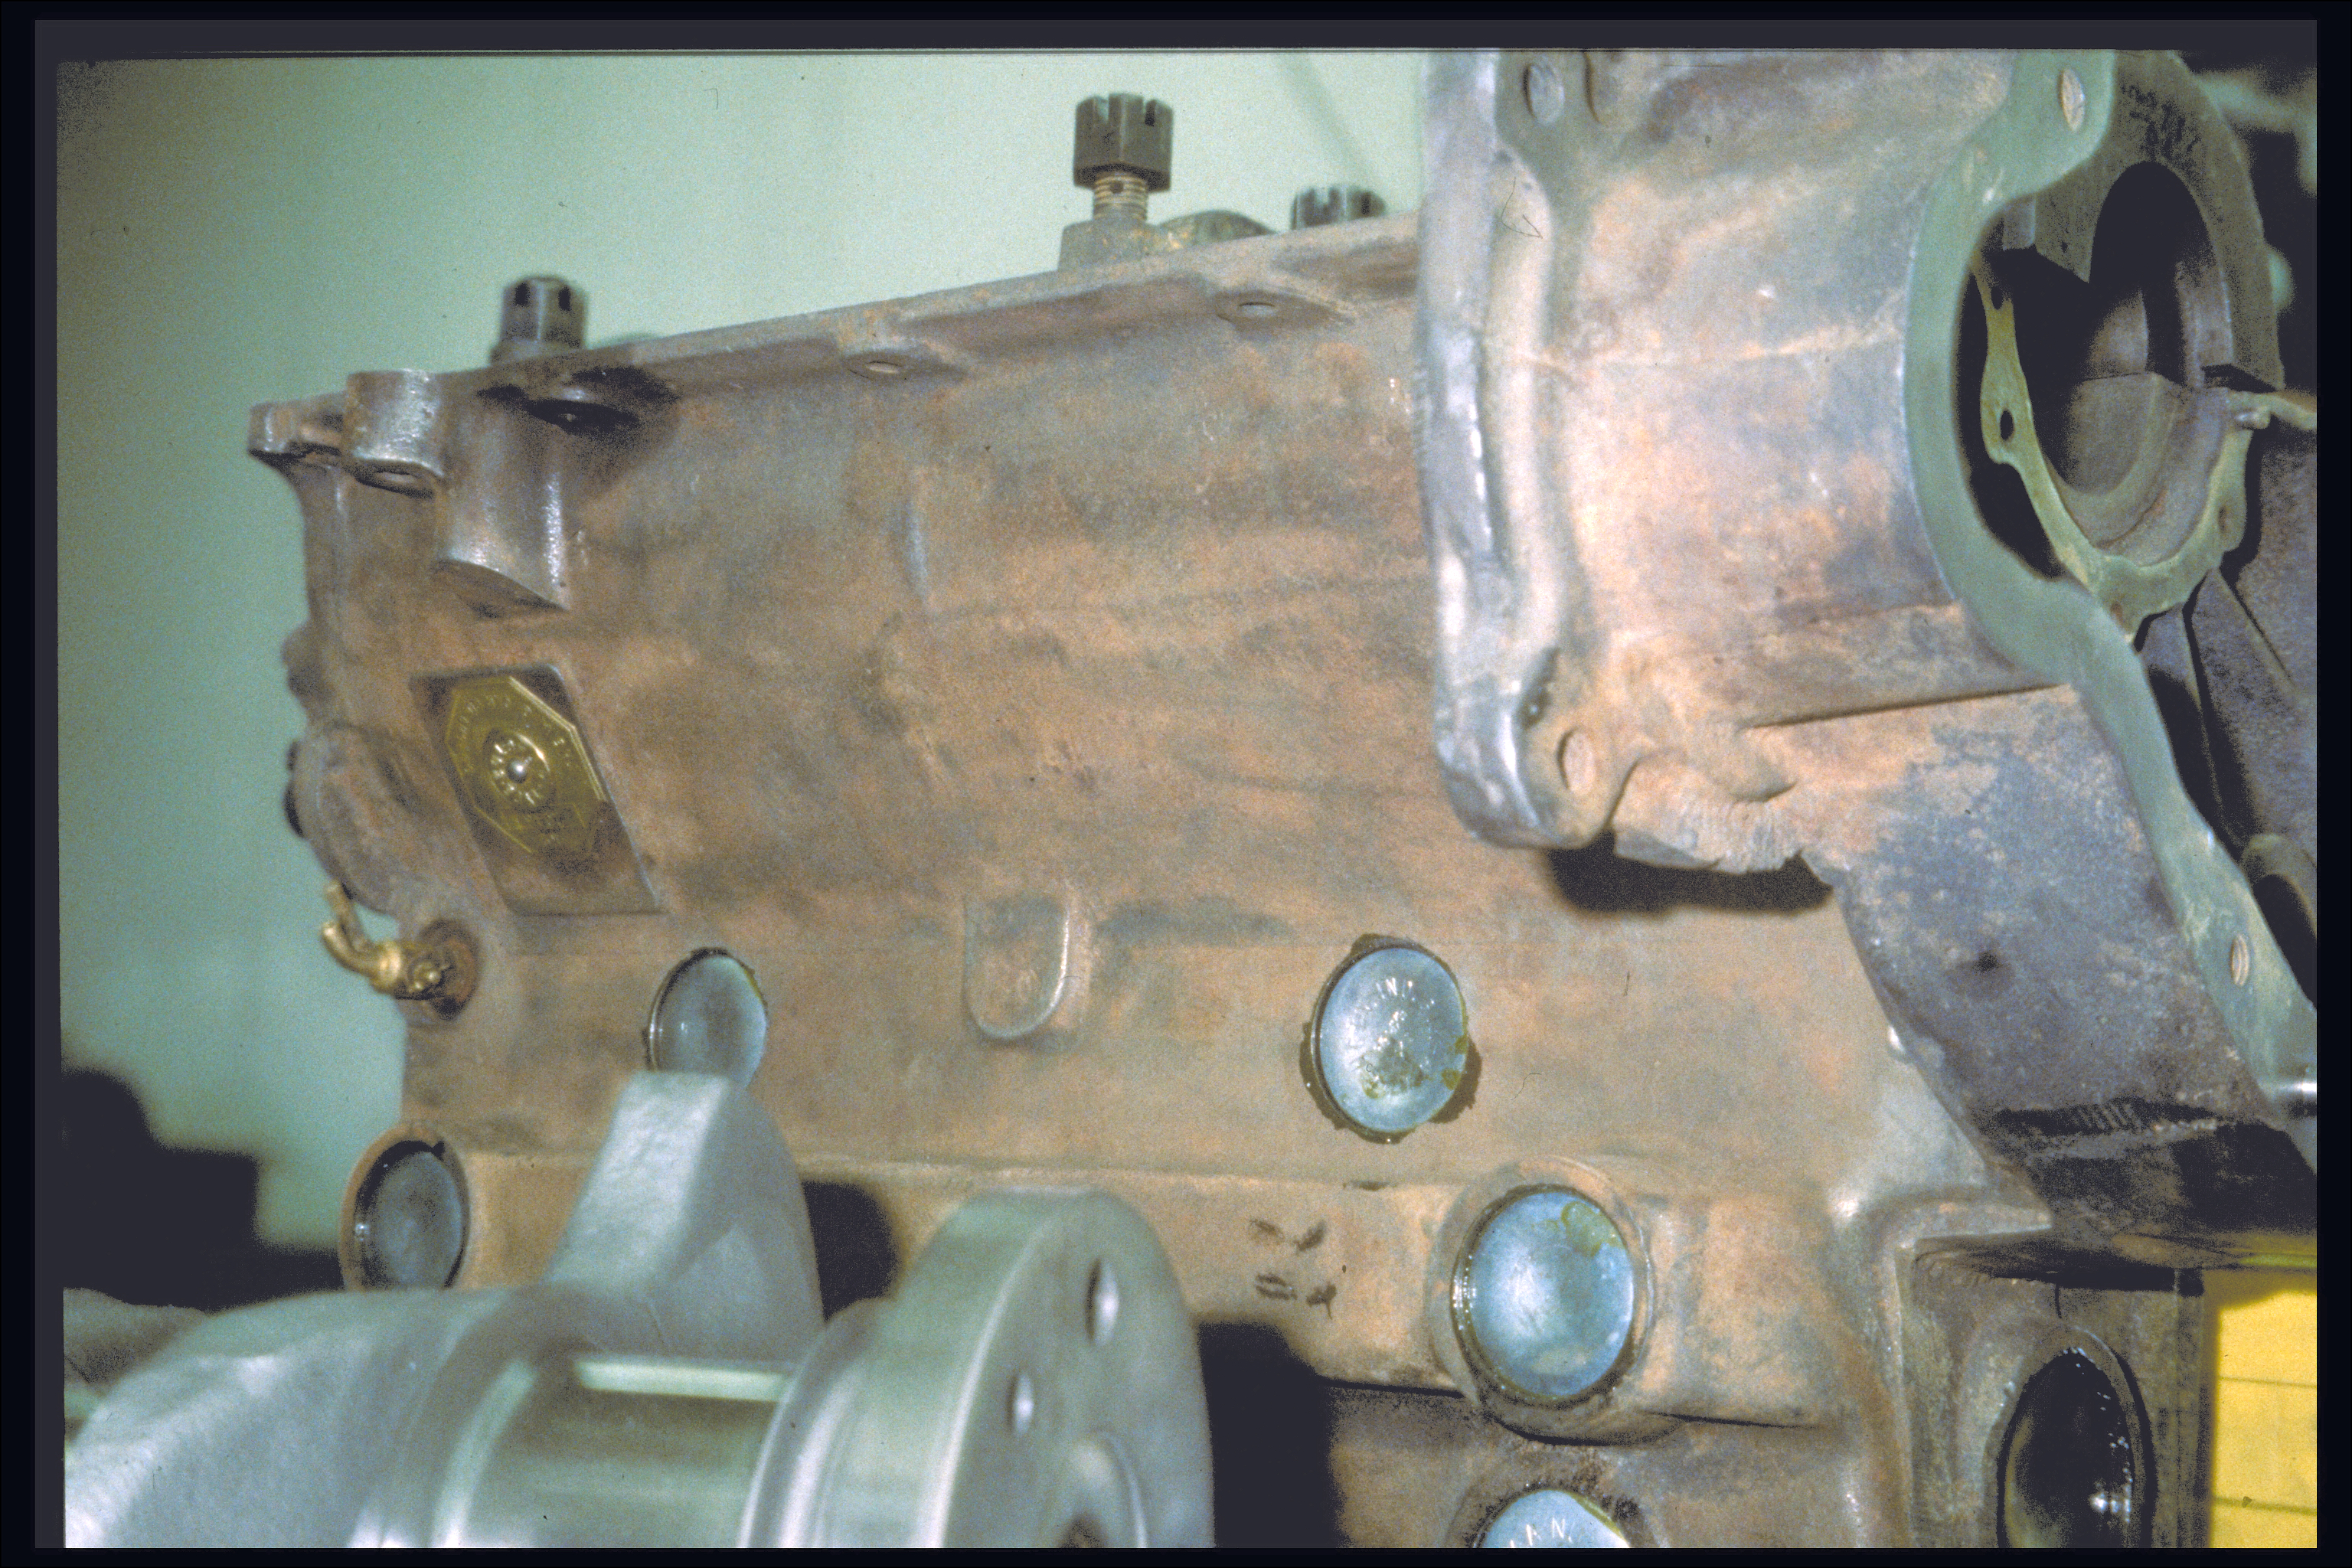 Inverted engine block, right side